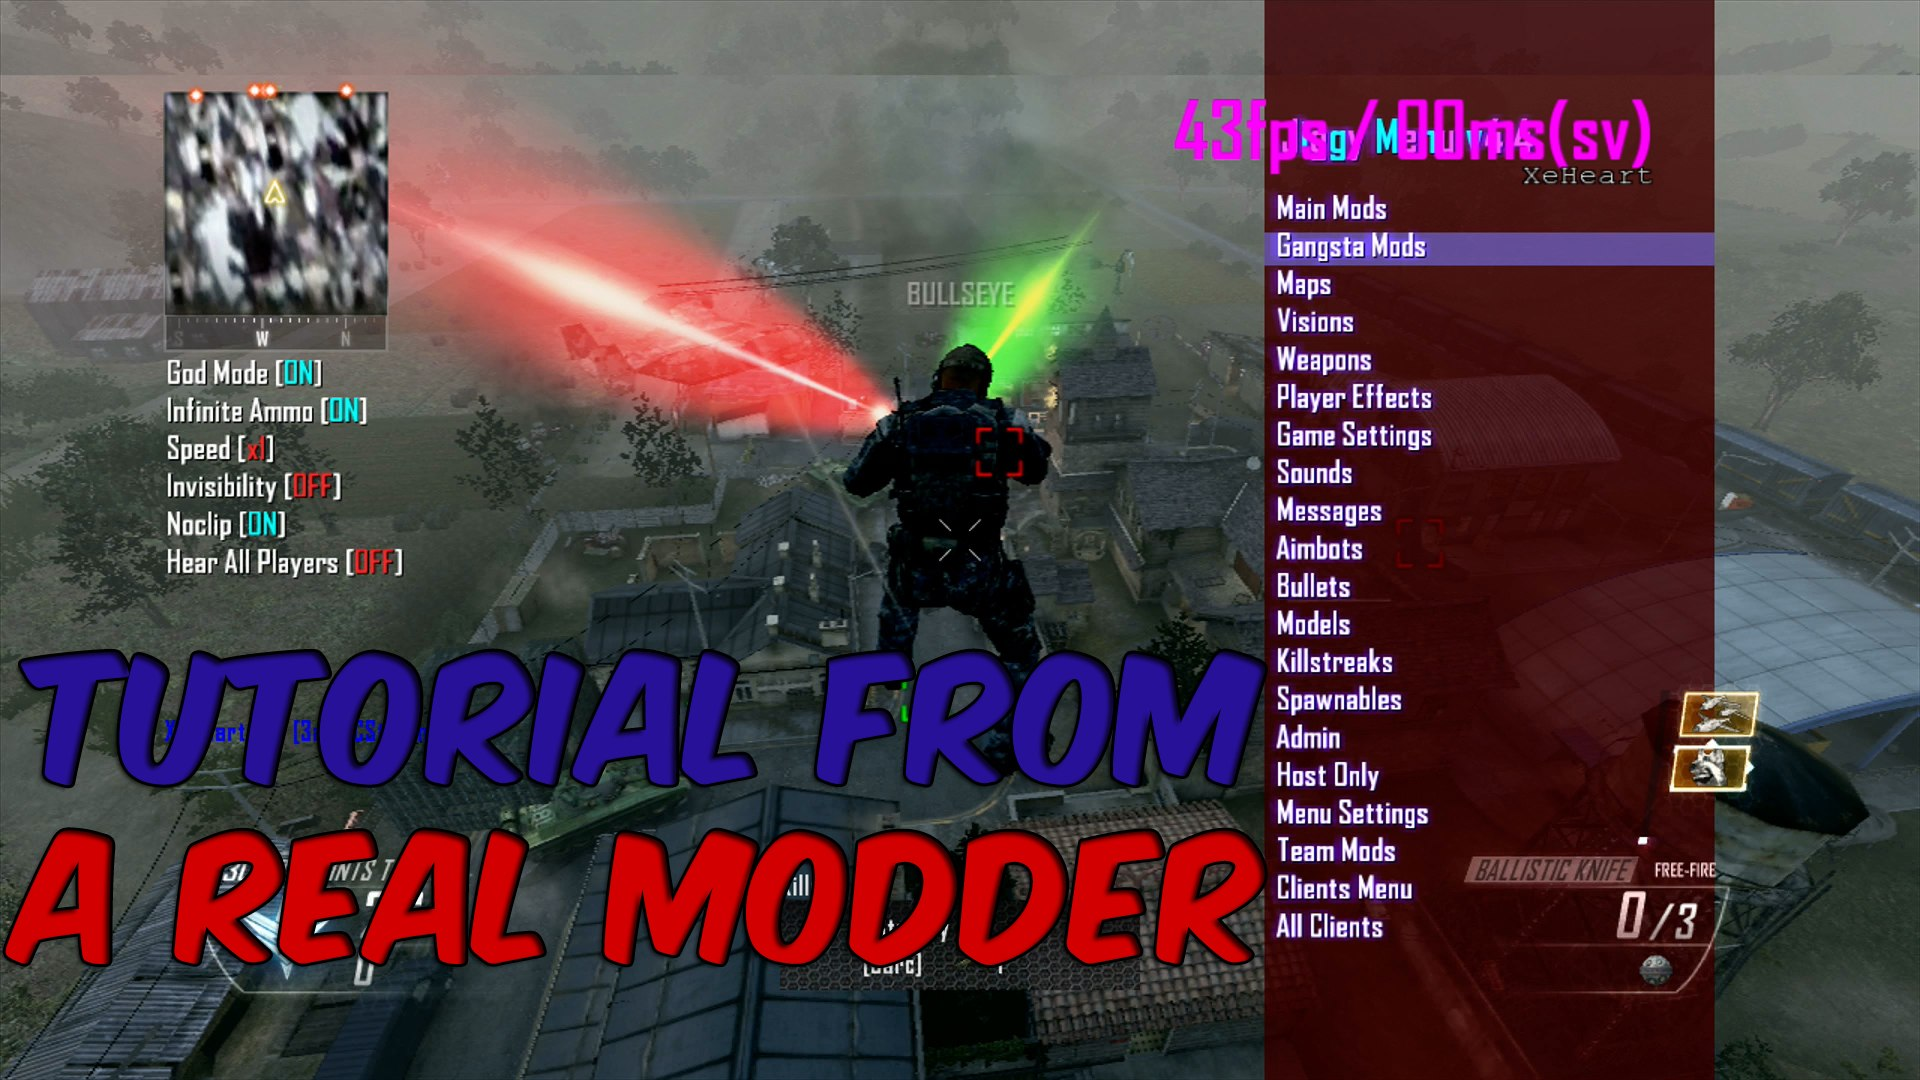 How To Install Any Black Ops 2 Mod Menu